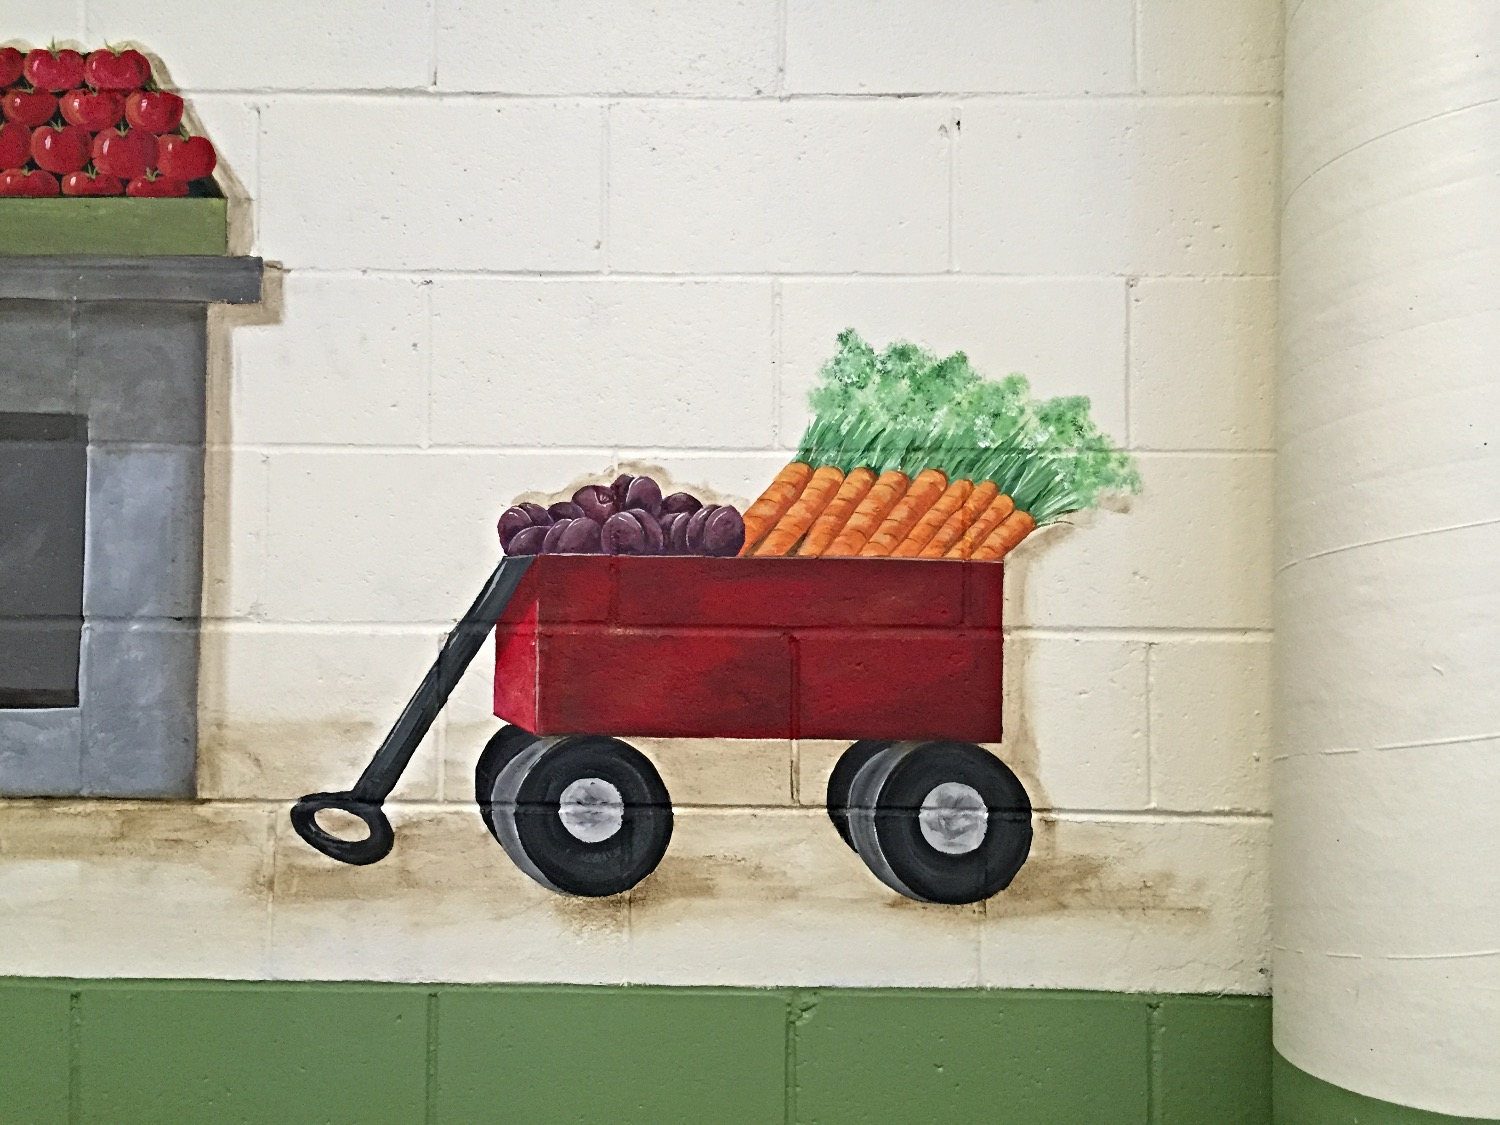 Closeup of wagon with produce